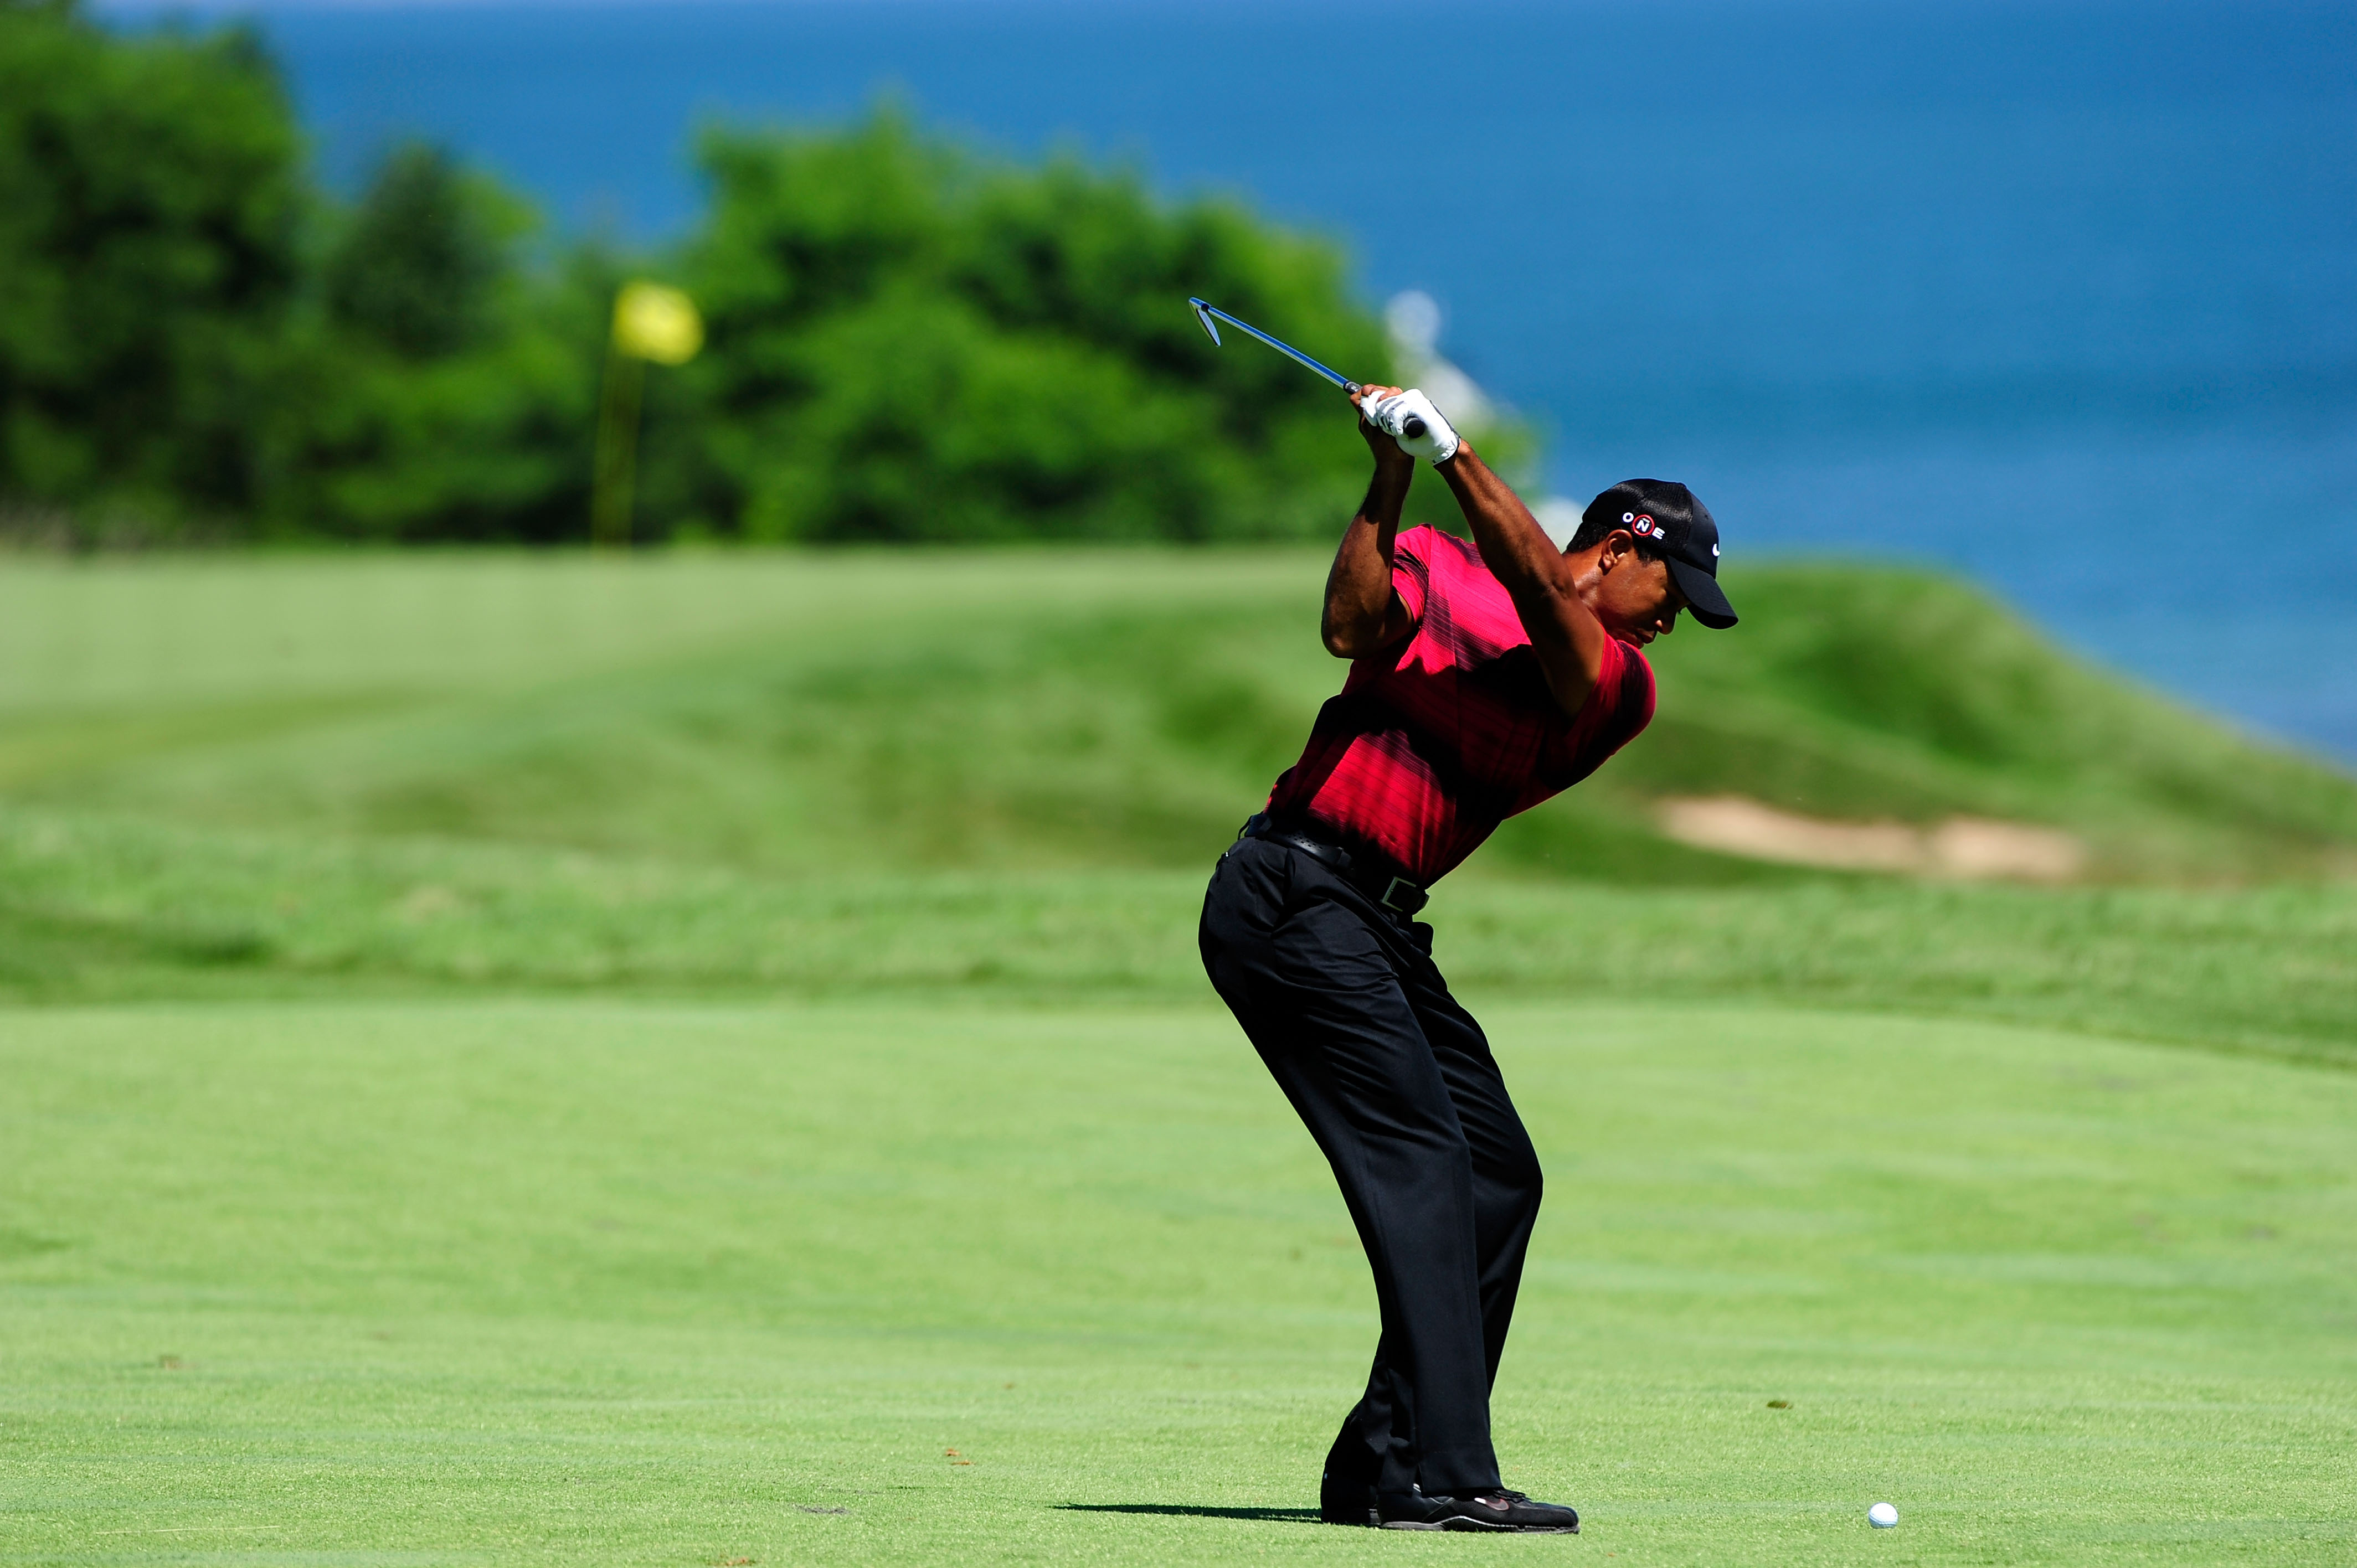 KOHLER, WI - AUGUST 15:  Tiger Woods plays his approach shot on the eighth hole during the final round of the 92nd PGA Championship on the Straits Course at Whistling Straits on August 15, 2010 in Kohler, Wisconsin.  (Photo by Stuart Franklin/Getty Images